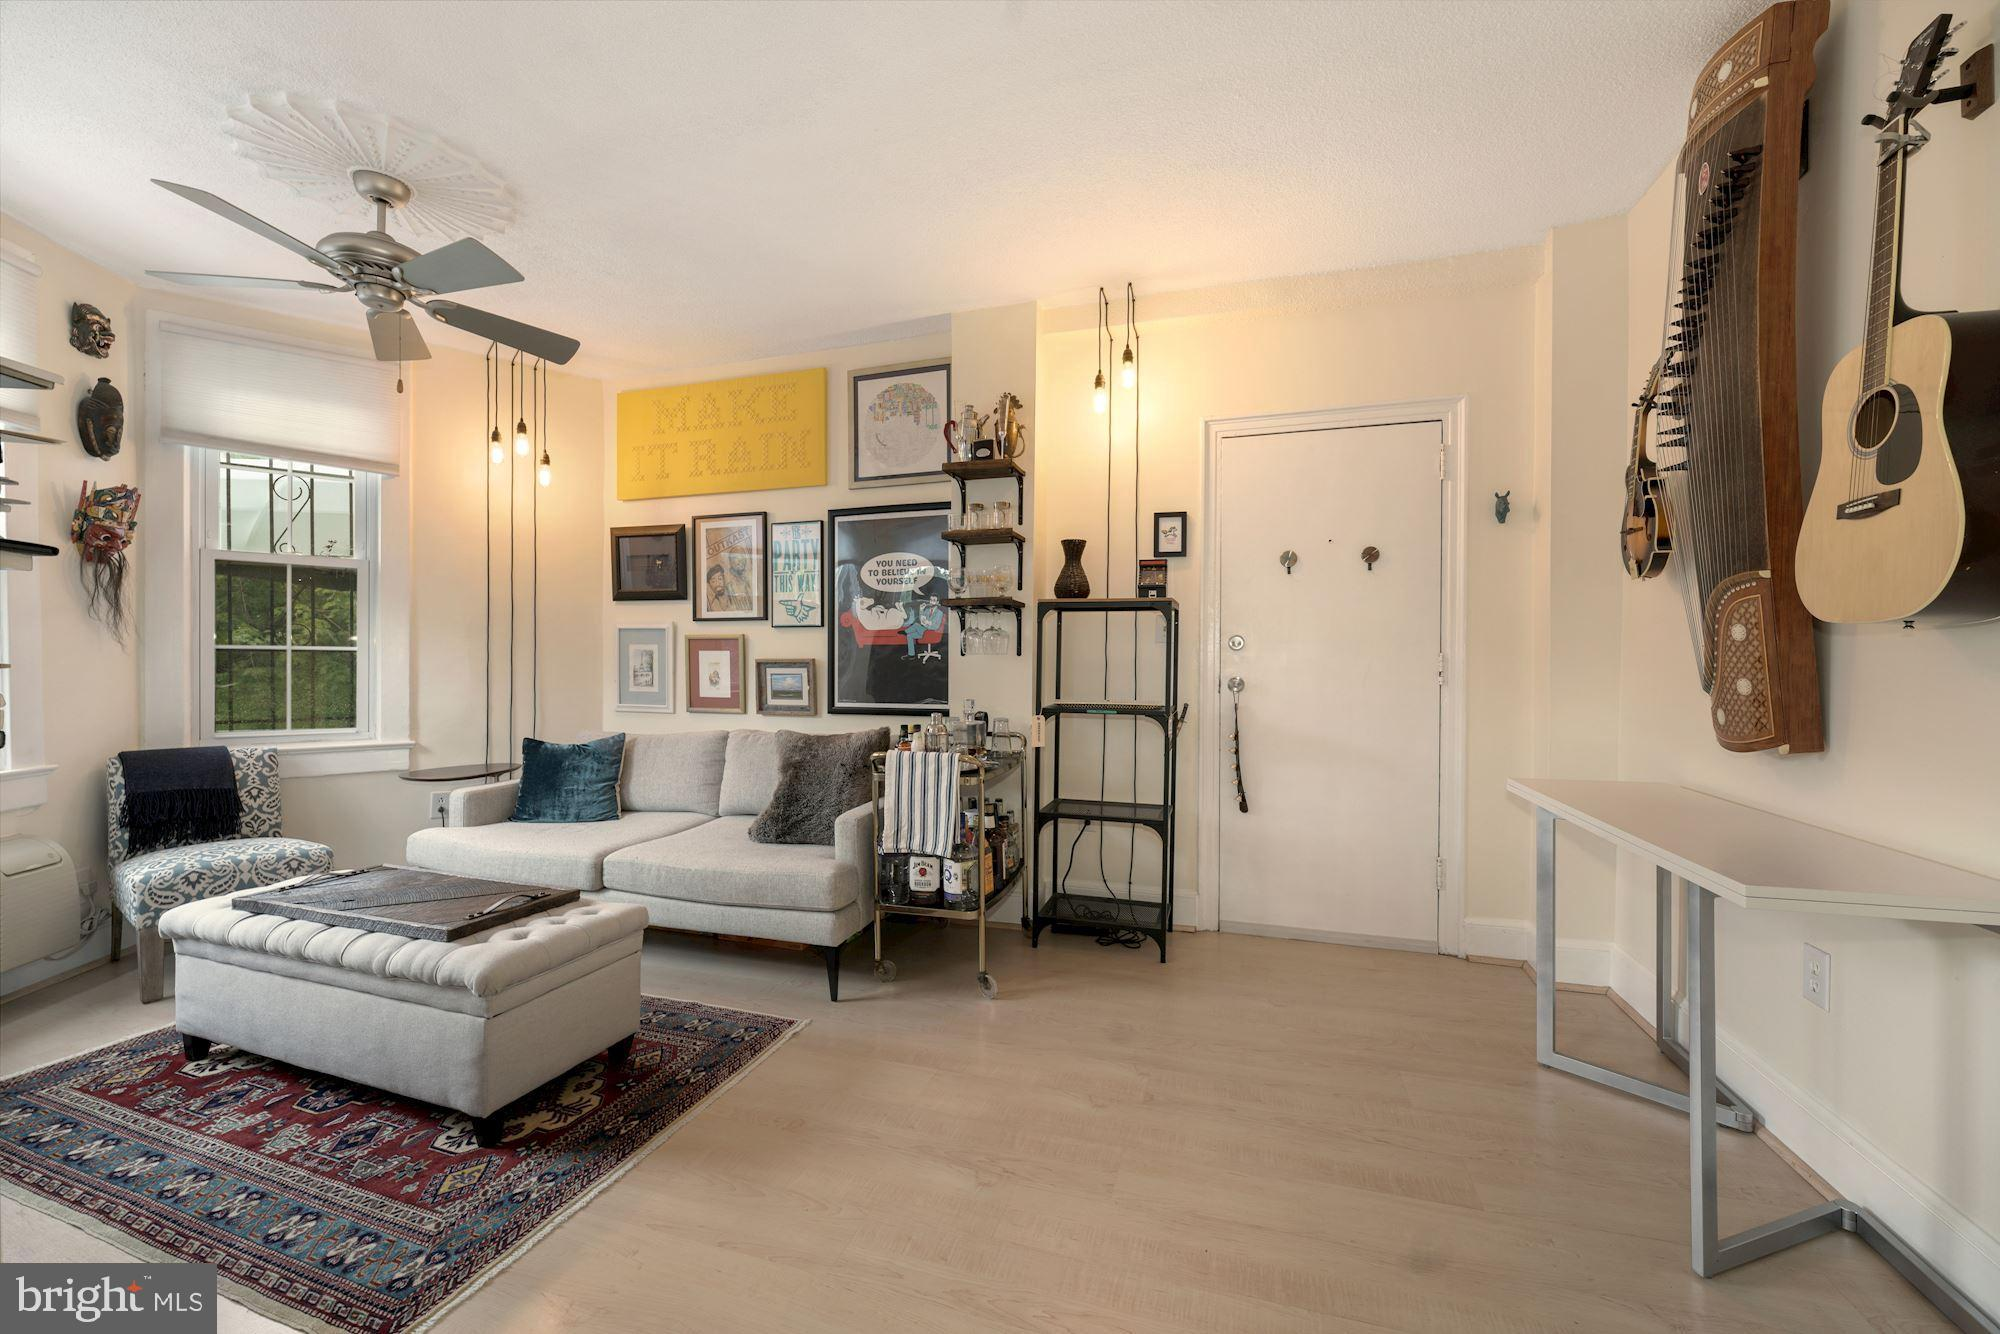 Sun-drenched 1BR in boutique building w/ FRONT-FACING bay window, washer / dryer, hall closet for st